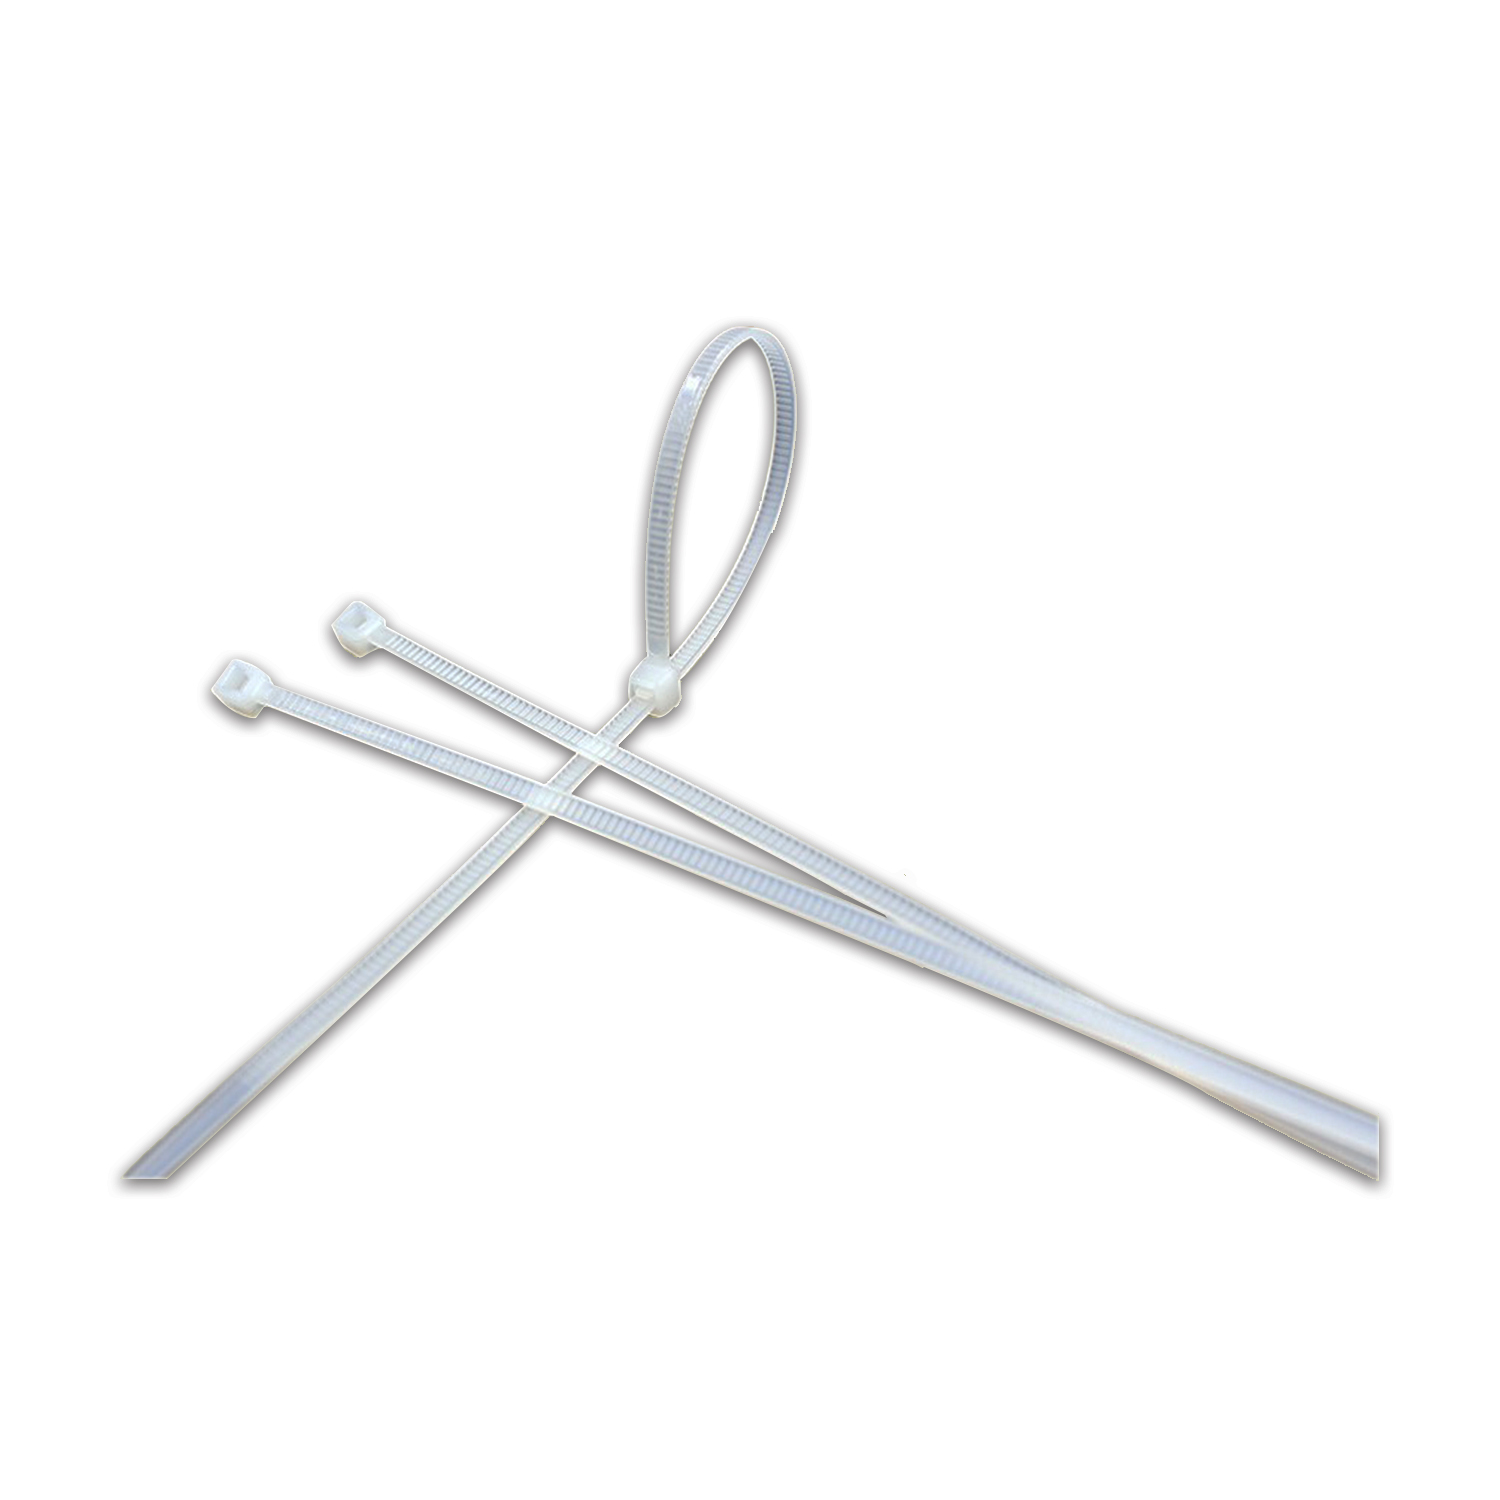 3x120mm Nylon Cable Ties (100 Pcs)